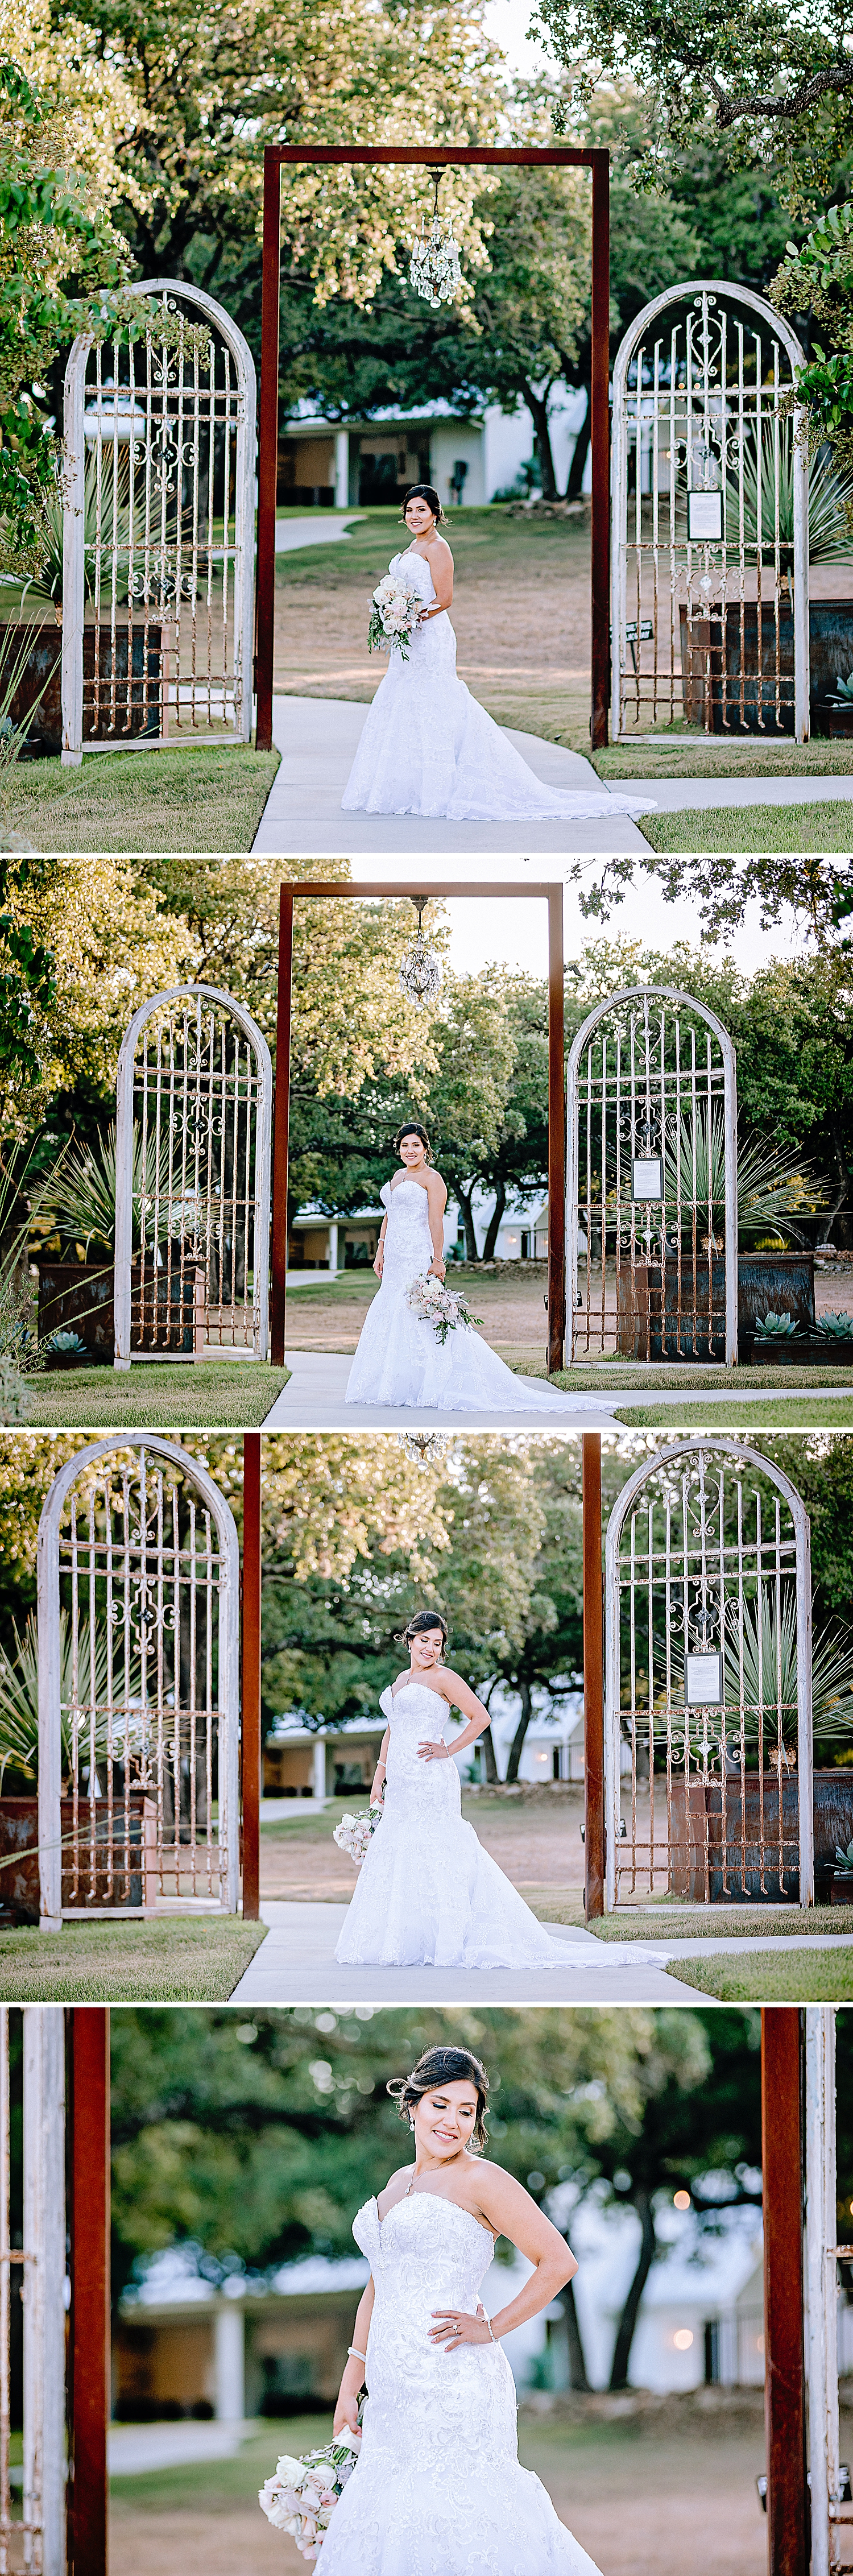 Carly-Barton-Photography-Bridal-Photos-Chadelier-of-Gruene-New-Braunfels-Wedding-Photographer_0016.jpg